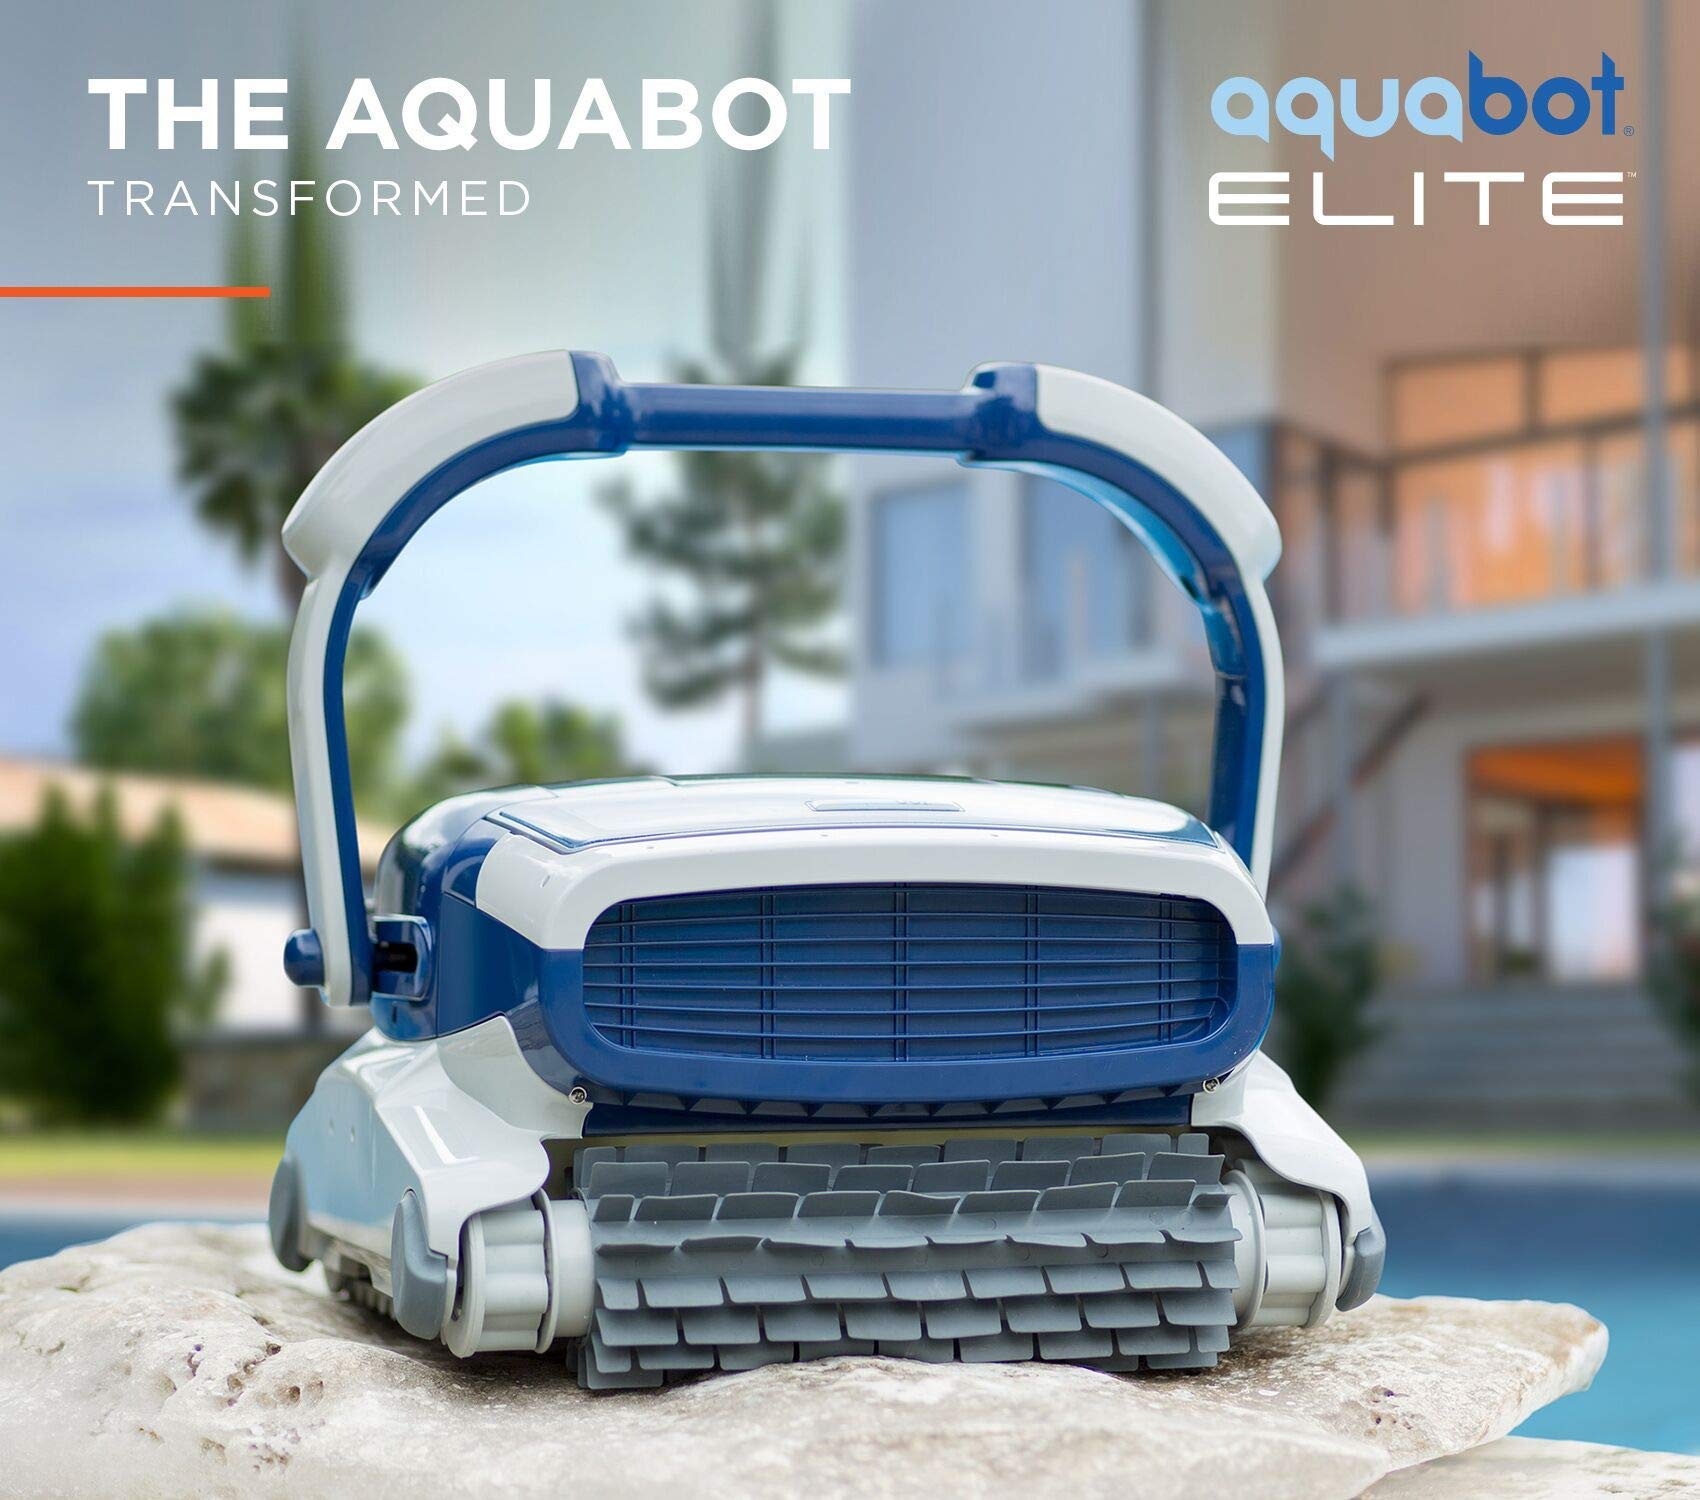 Aquabot Elite Inground Robotic Pool Cleaner Little Robot